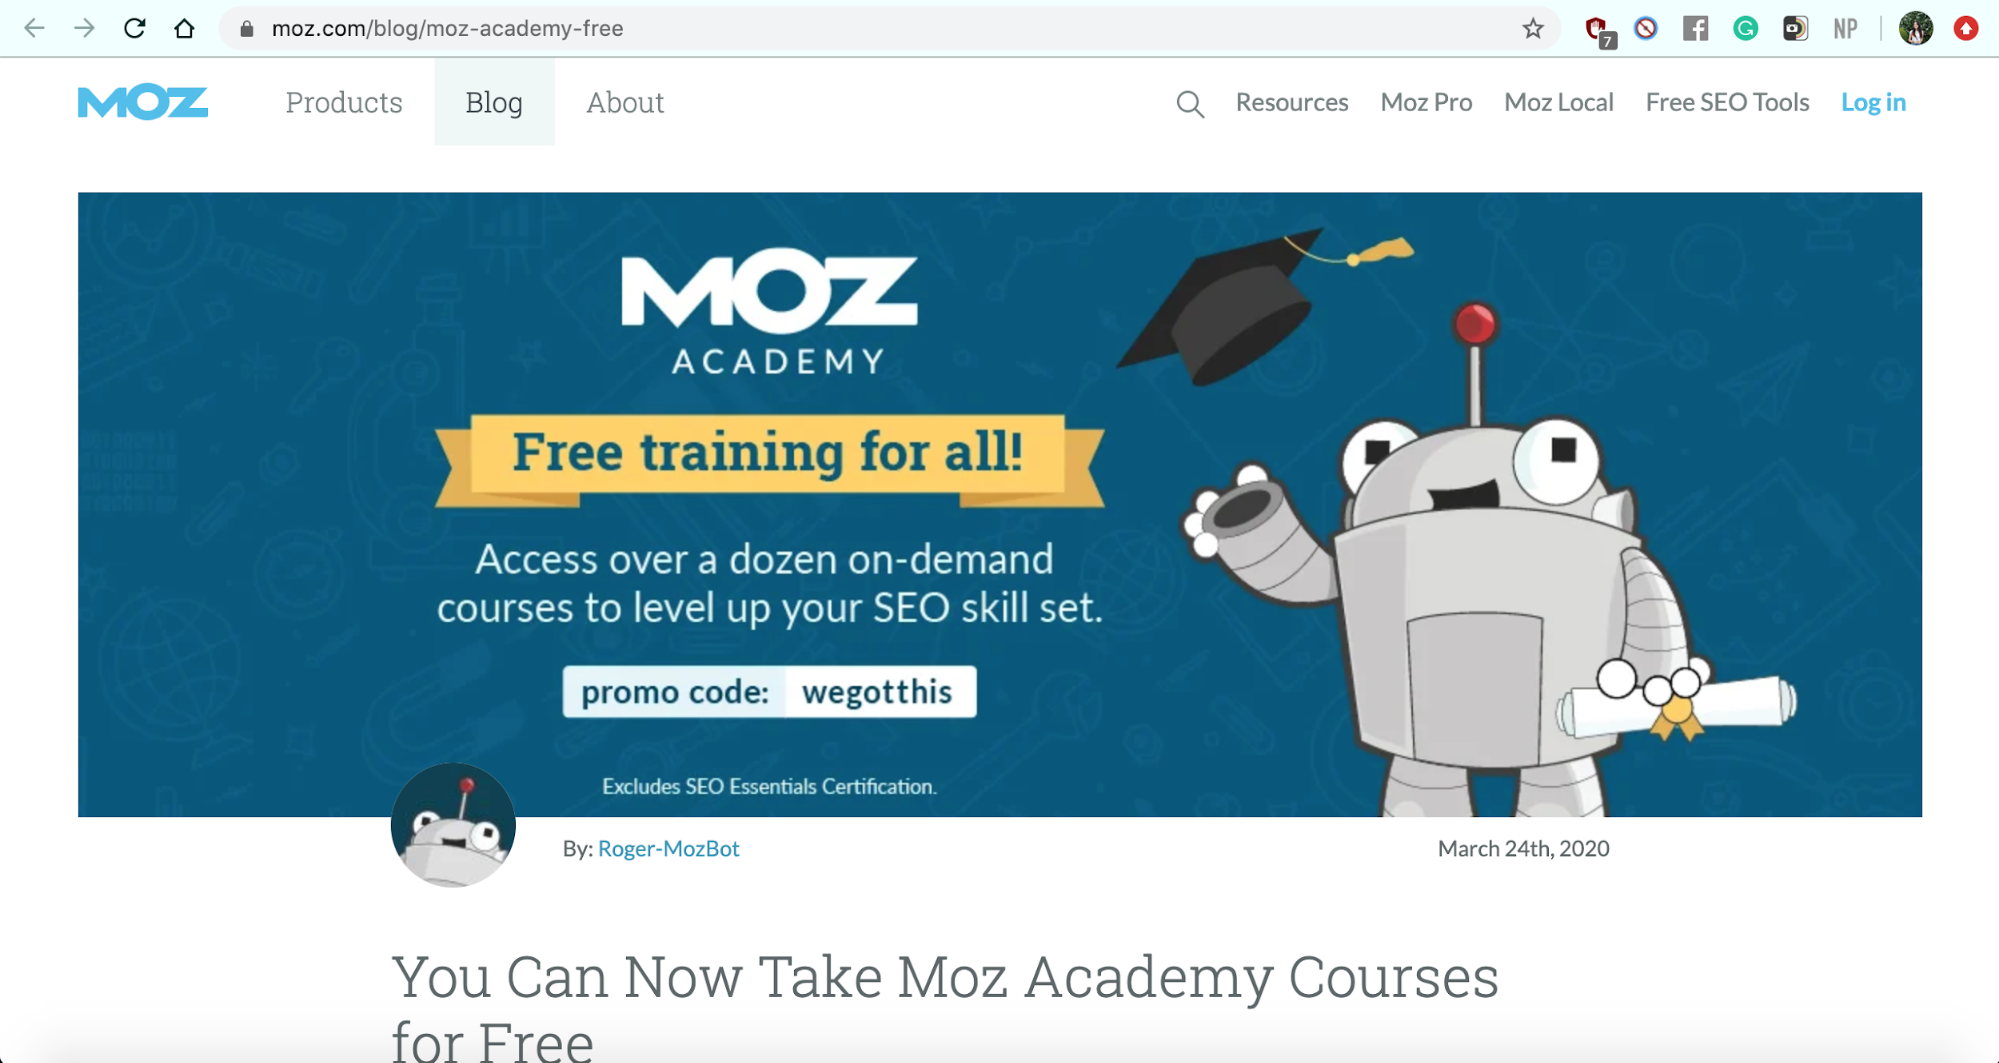 Free courses and software: Moz